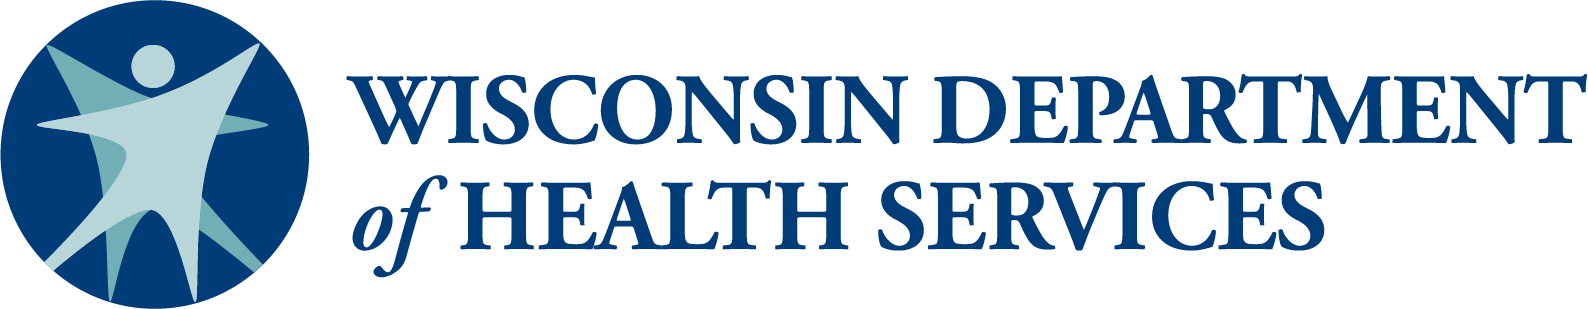 WI-DHS (Department of Health Services)